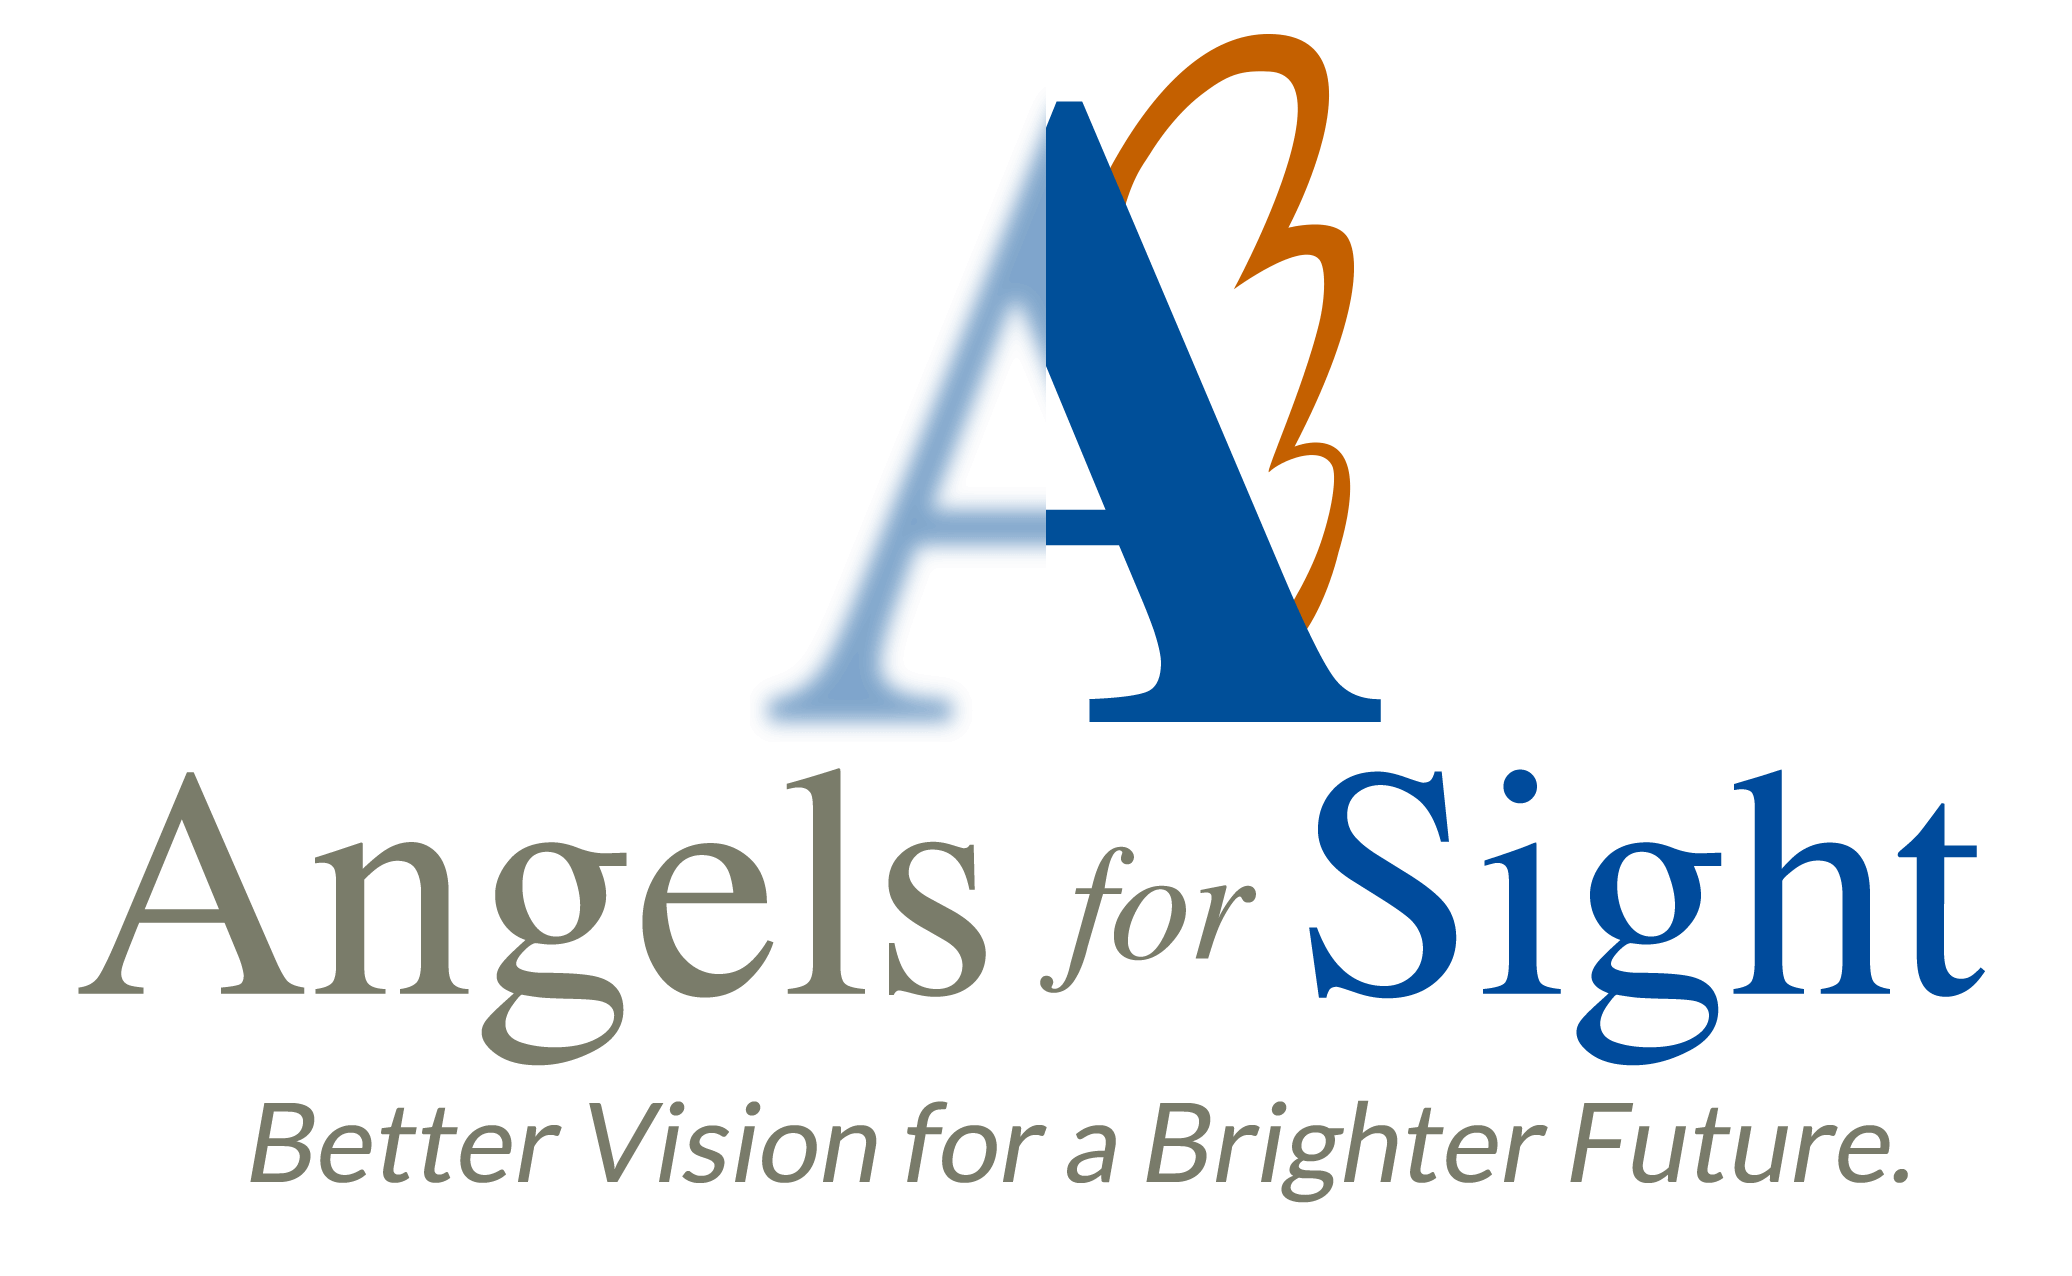 Client Profile: Angels for Sight